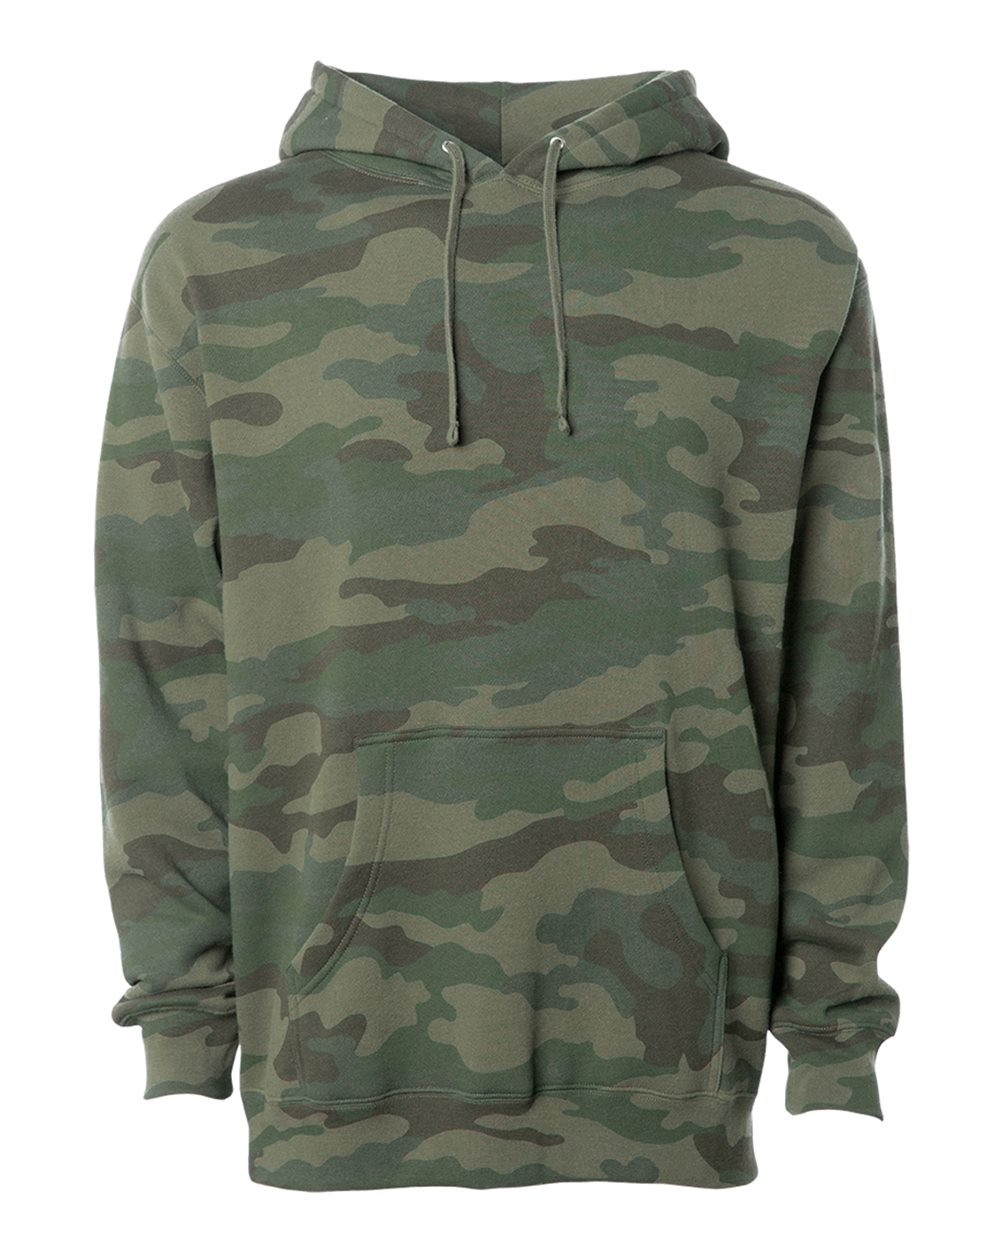 Independent Trading Co. Camo Hooded Pullover Sweatshirt ce28d17ffab